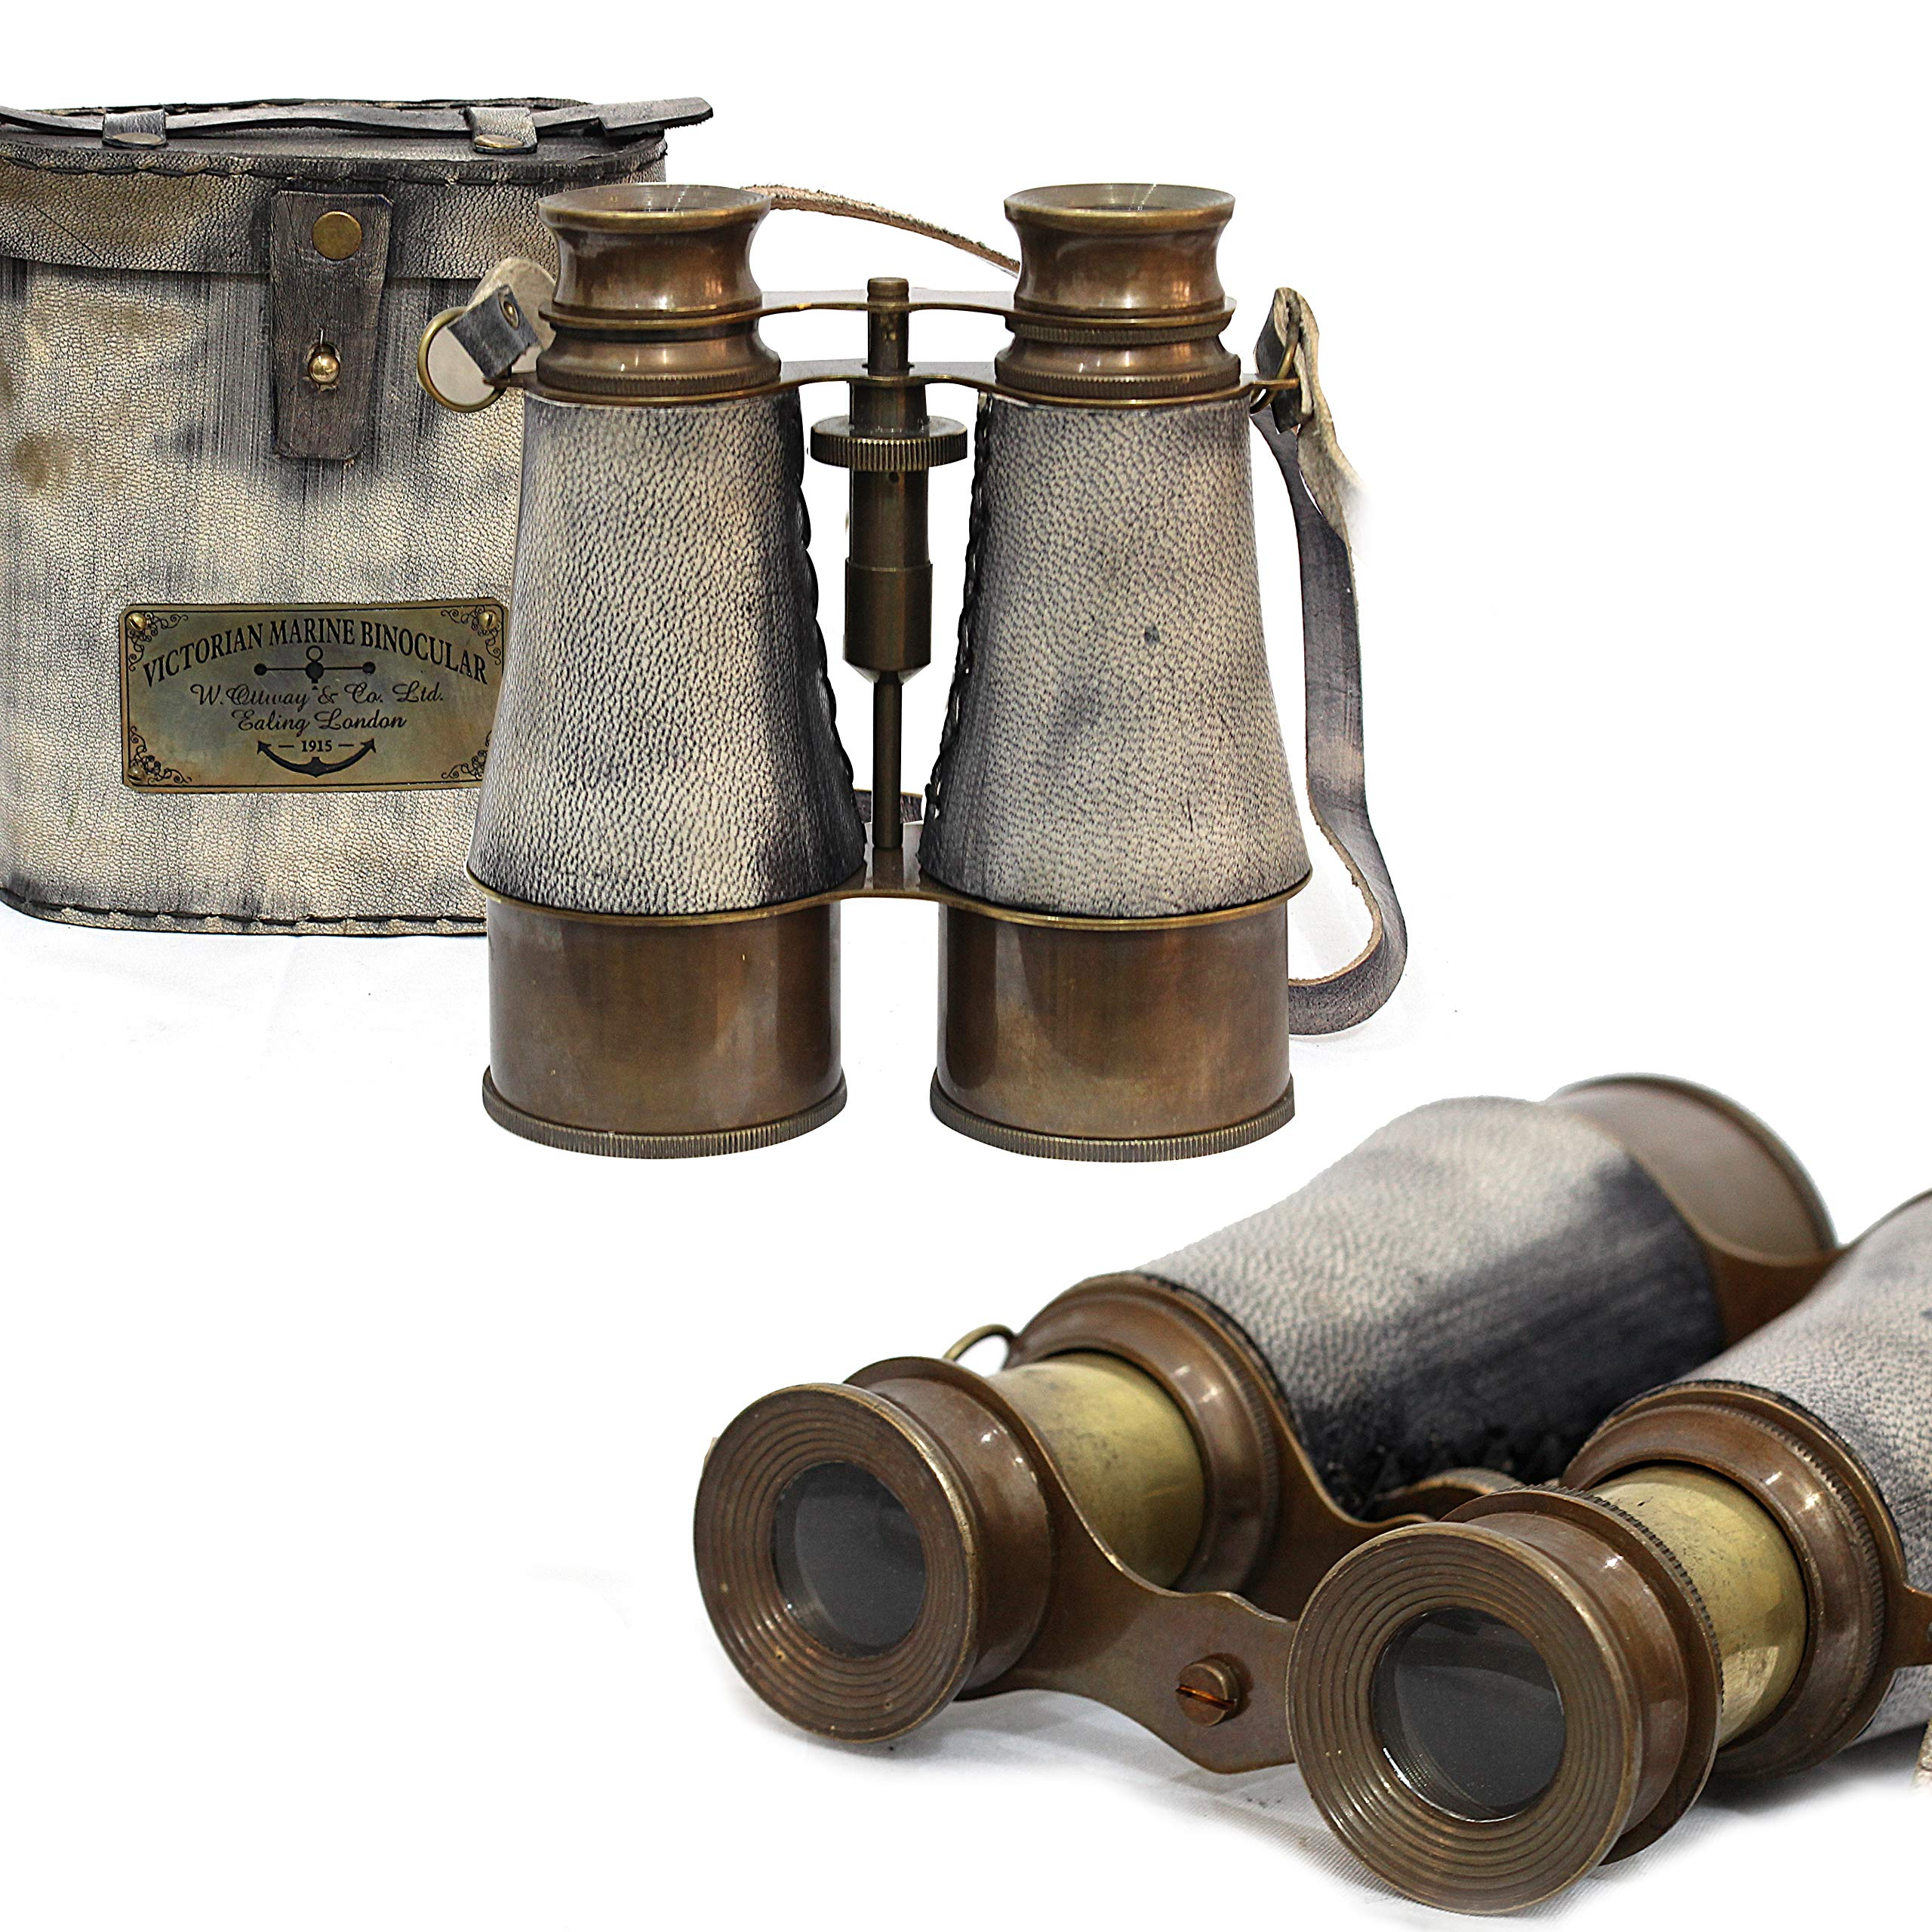 Victorian Marine Brass Leather Binocular Sailor Instrument London 1915 (Gray)